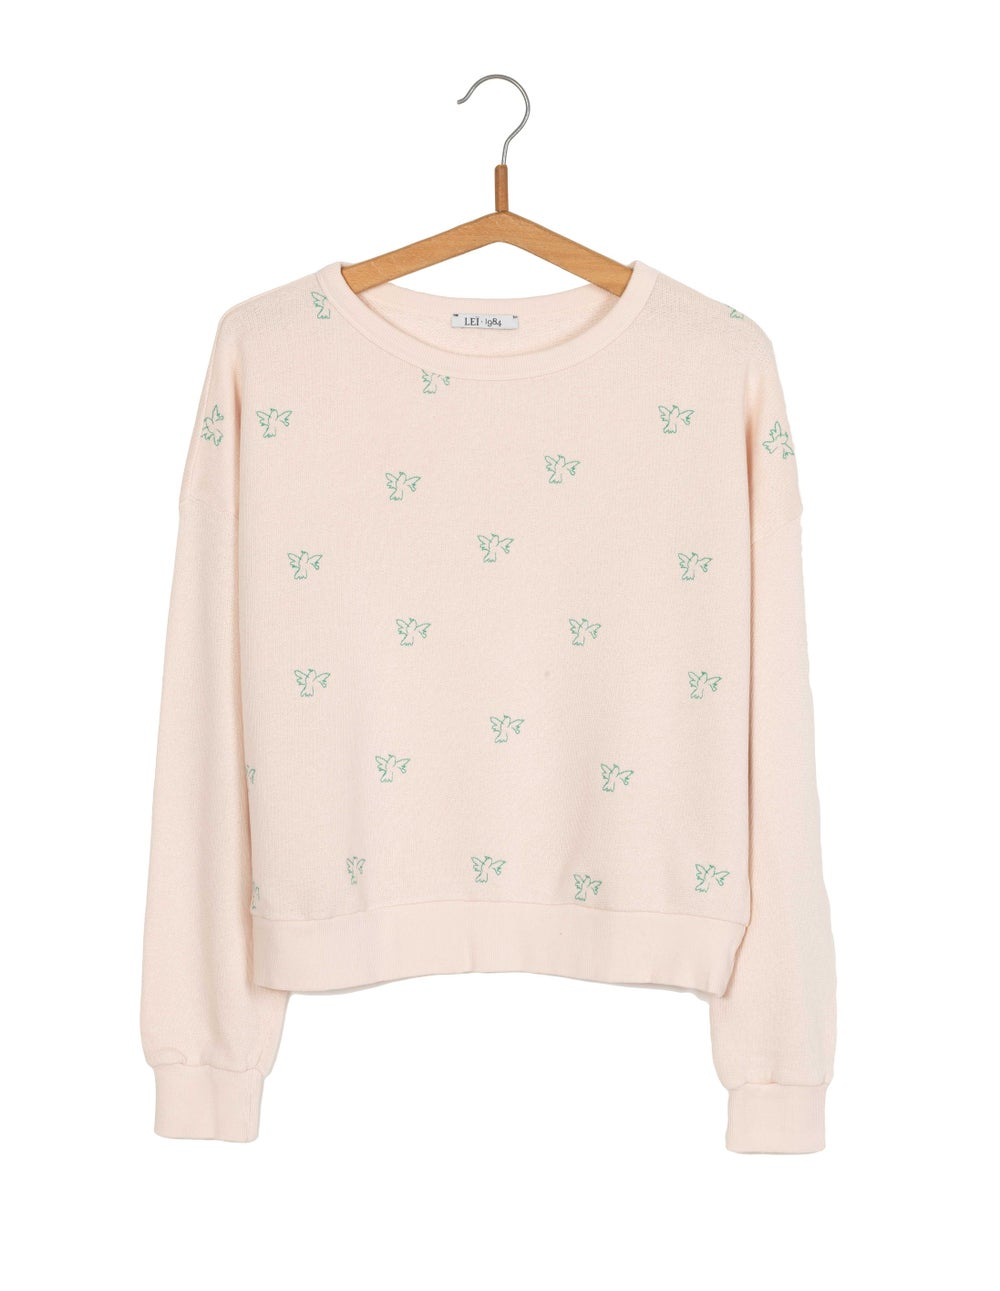 Image of Sweat court broderies colombes AUGUSTIN BIS 95€ -60%